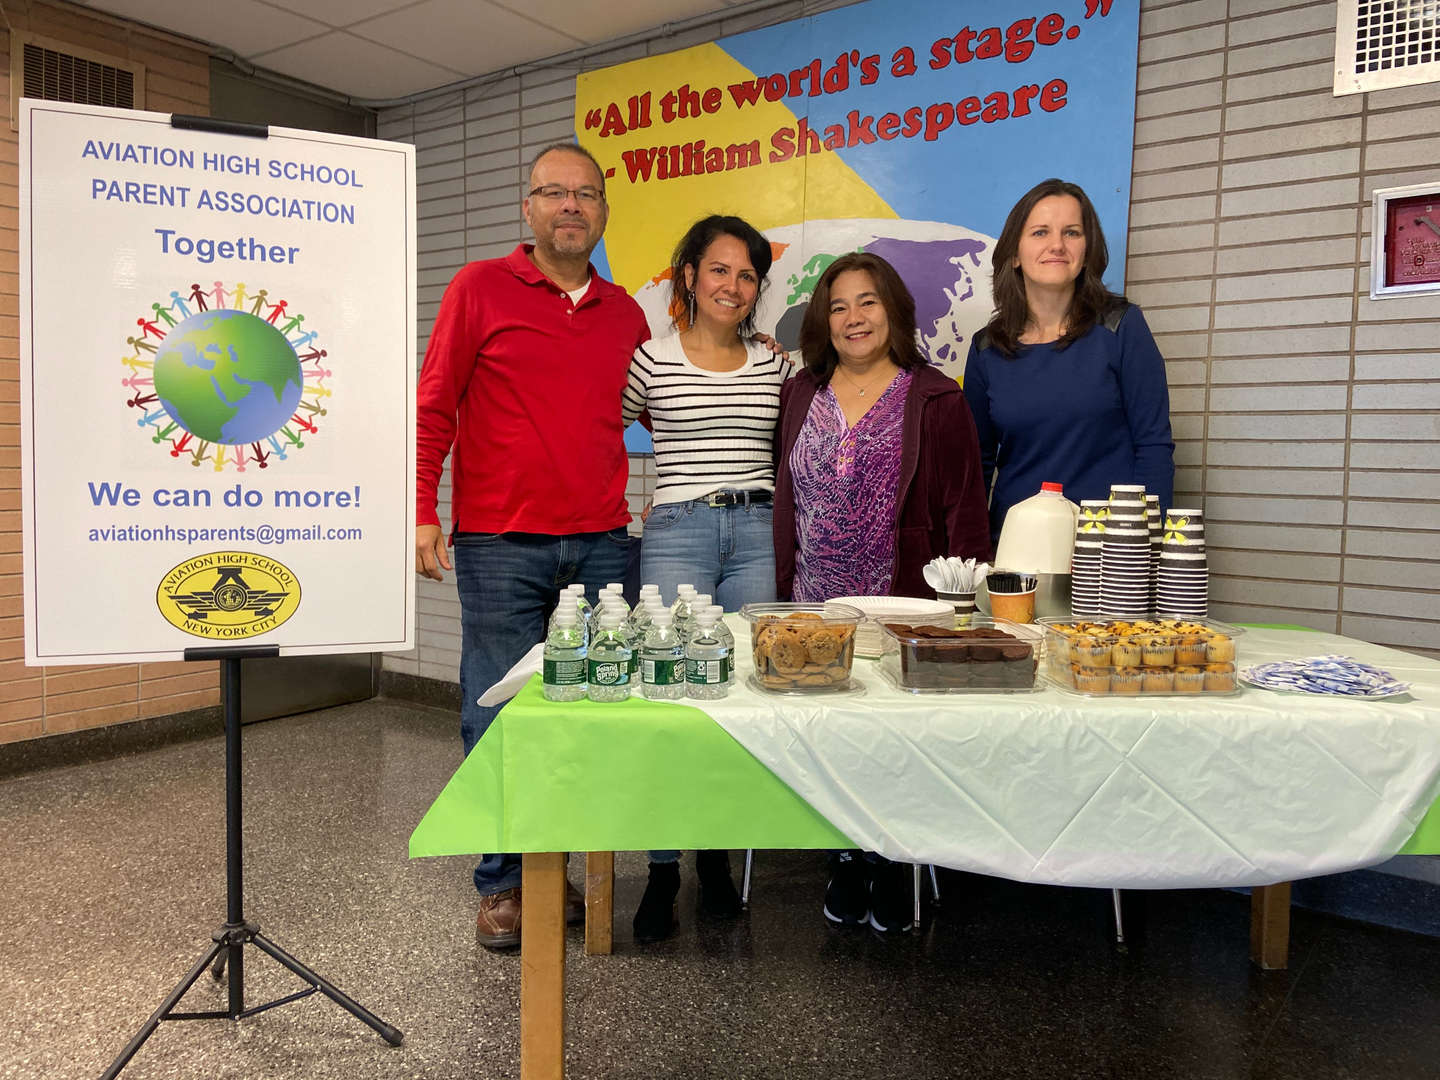 Our PA executive board members came out to volunteer for our Open House on Saturday, October 19, 2019. They provided our prospective families with Coffee and Treats and valuable insight, on what it means to be a Parent of a student at Aviation High School.